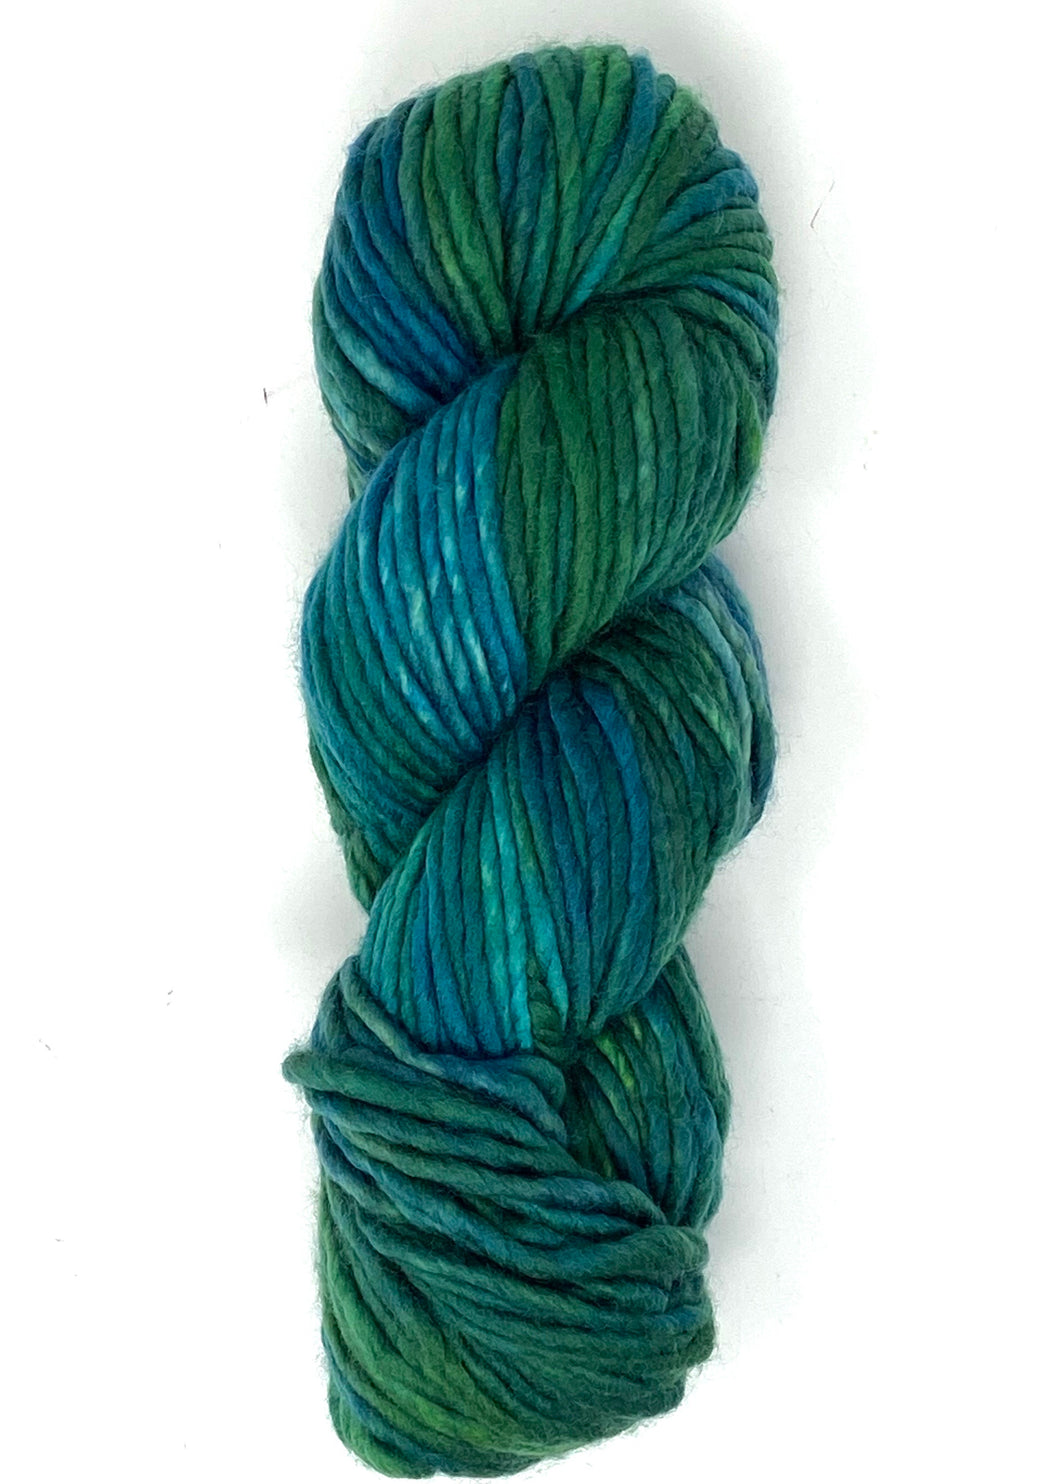 Heirloom - Baah Yarn Sequoia